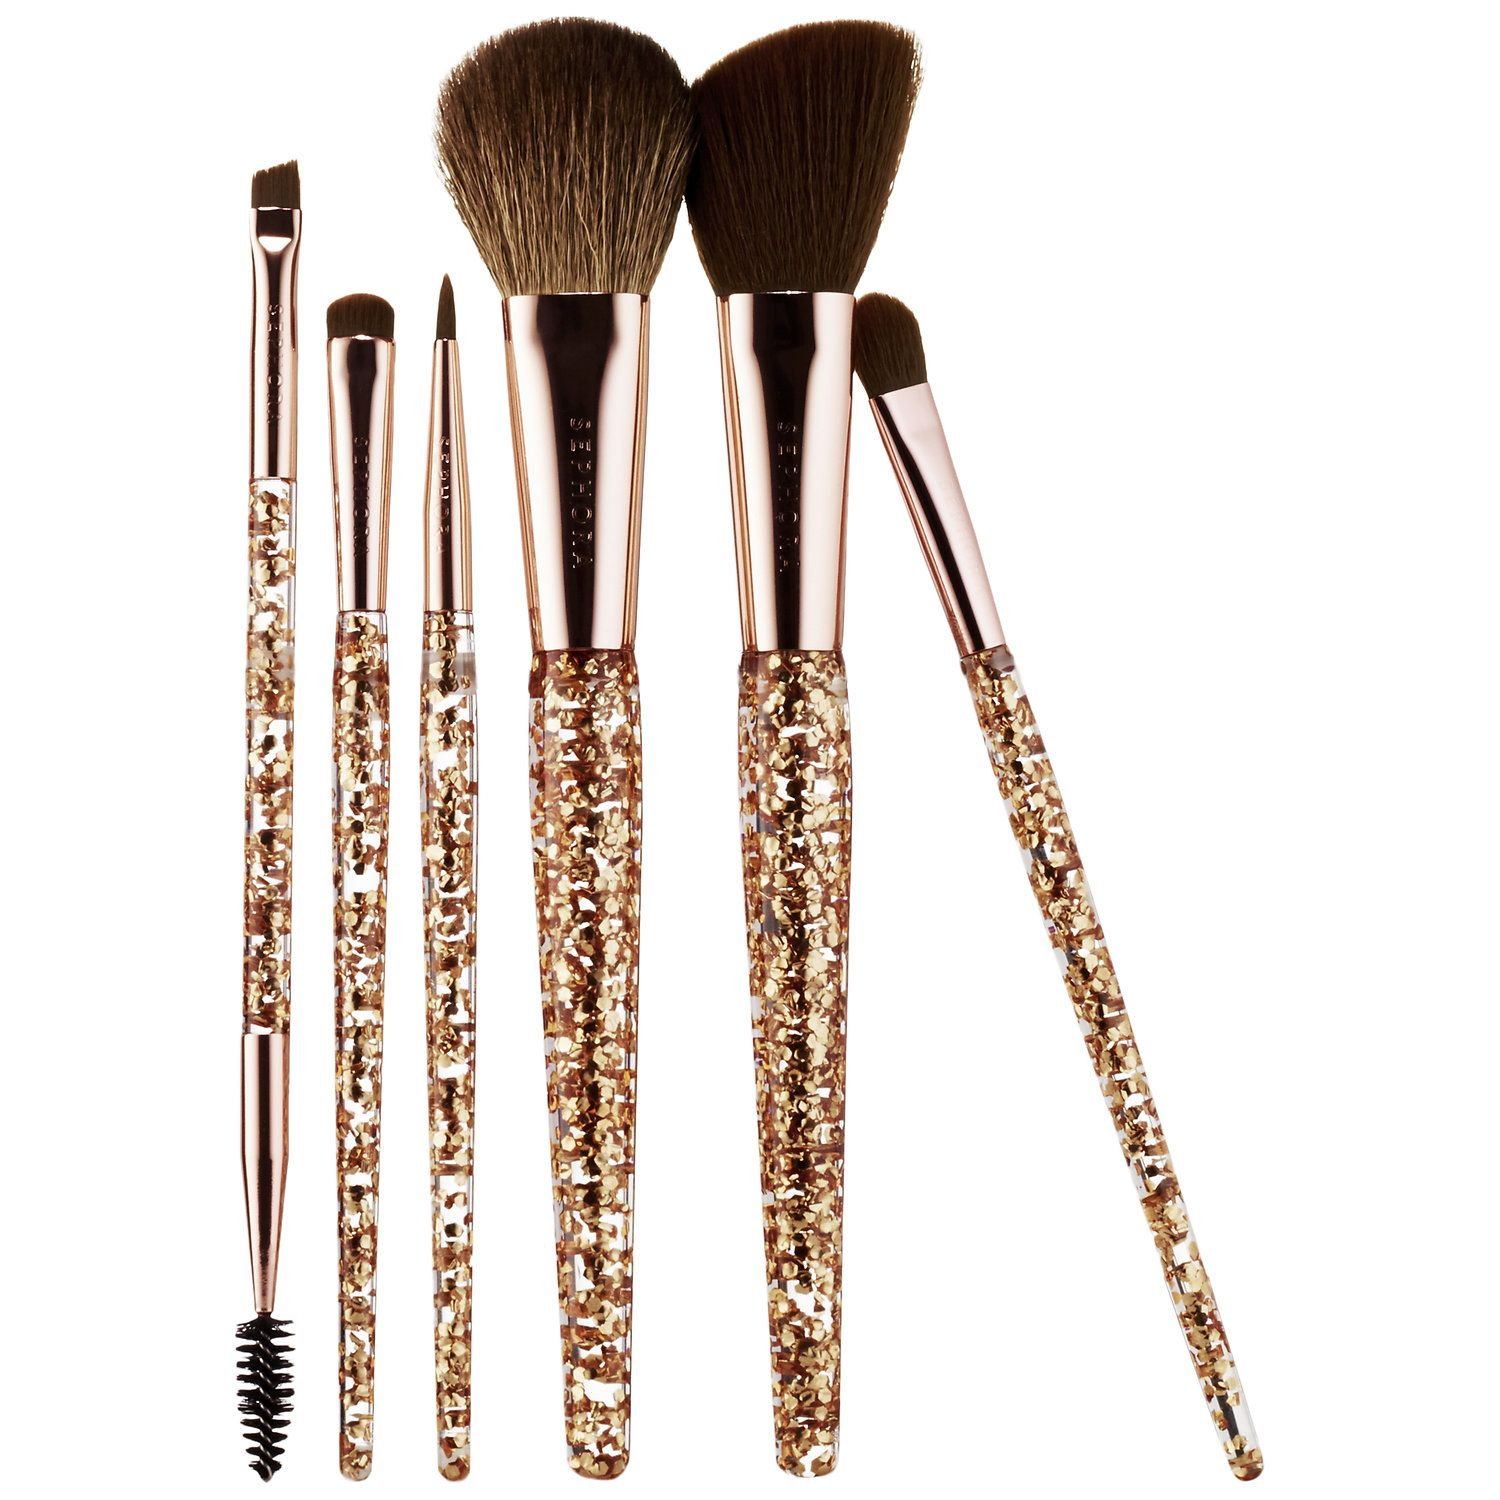 Shop Sephora Collection's Be Spotted Brush Set at Sephora